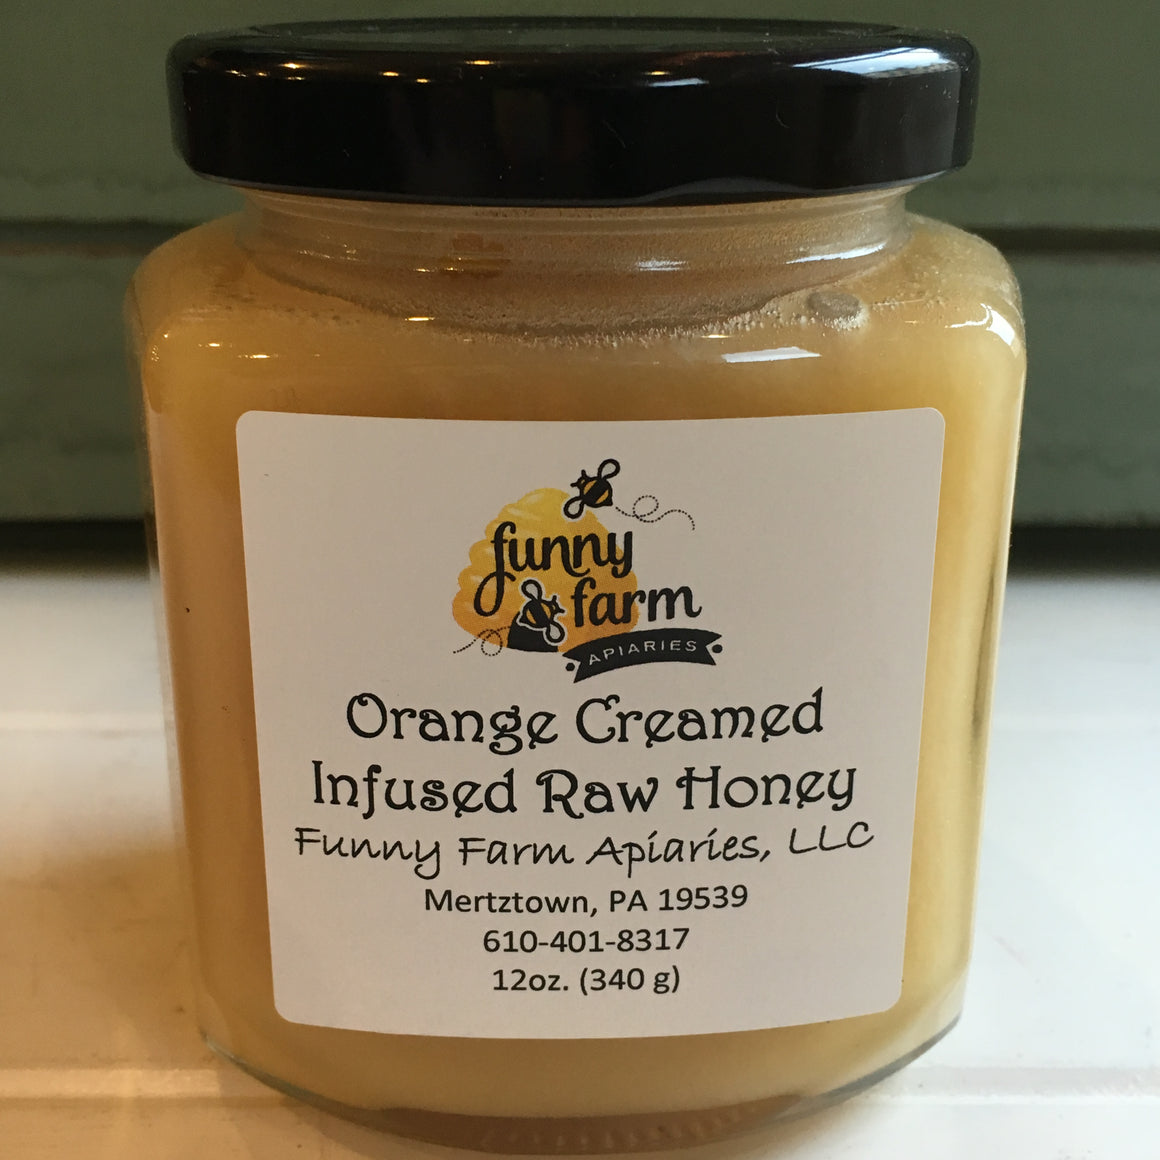 Orange Creamed Infused Raw Honey, 12 oz - A Taste of Olive